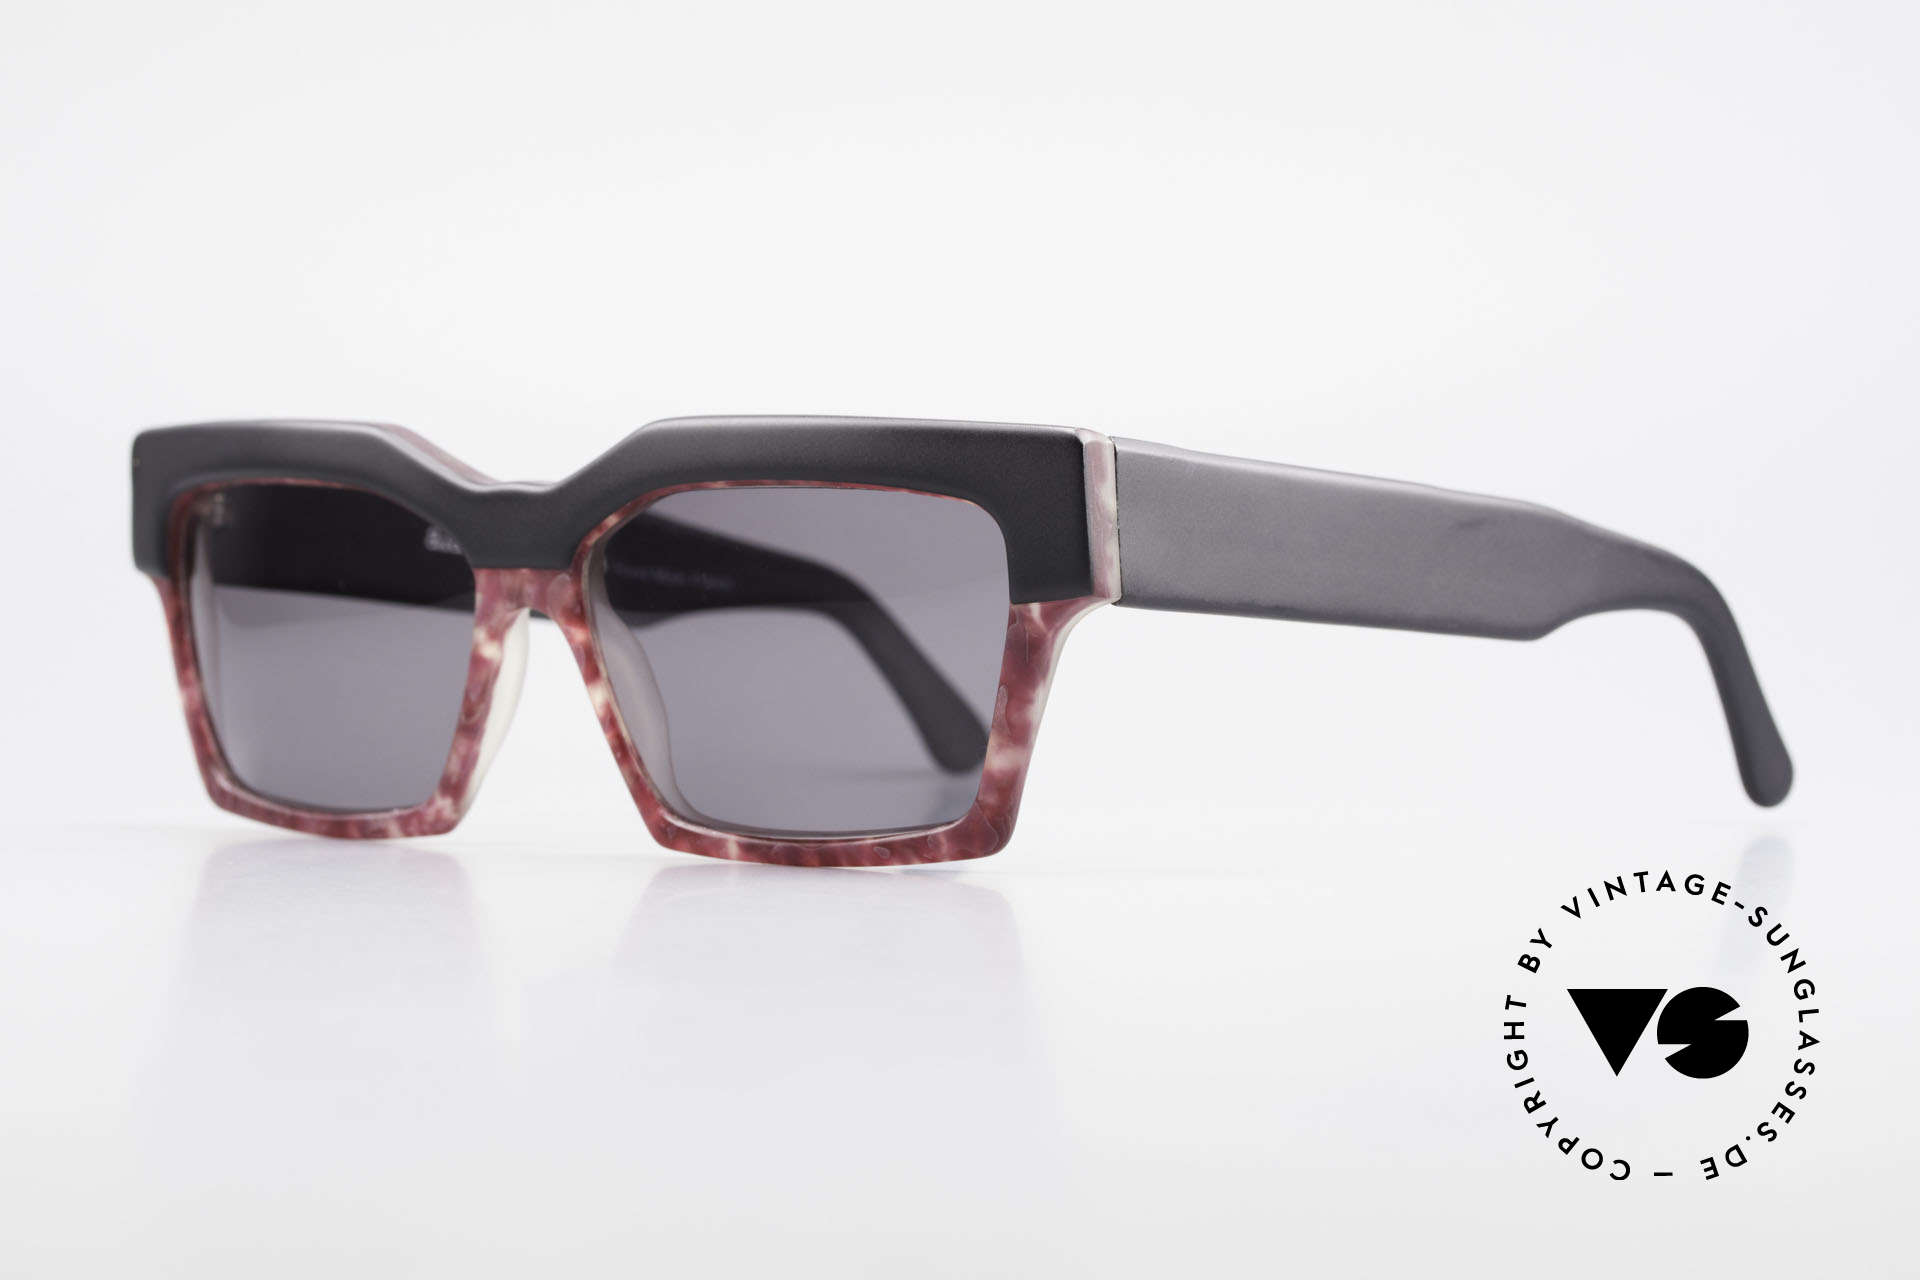 Alain Mikli 318 / 423 80's XL Designer Sunglasses, extravagant, but noble & sophisticated (typically A.M.), Made for Women